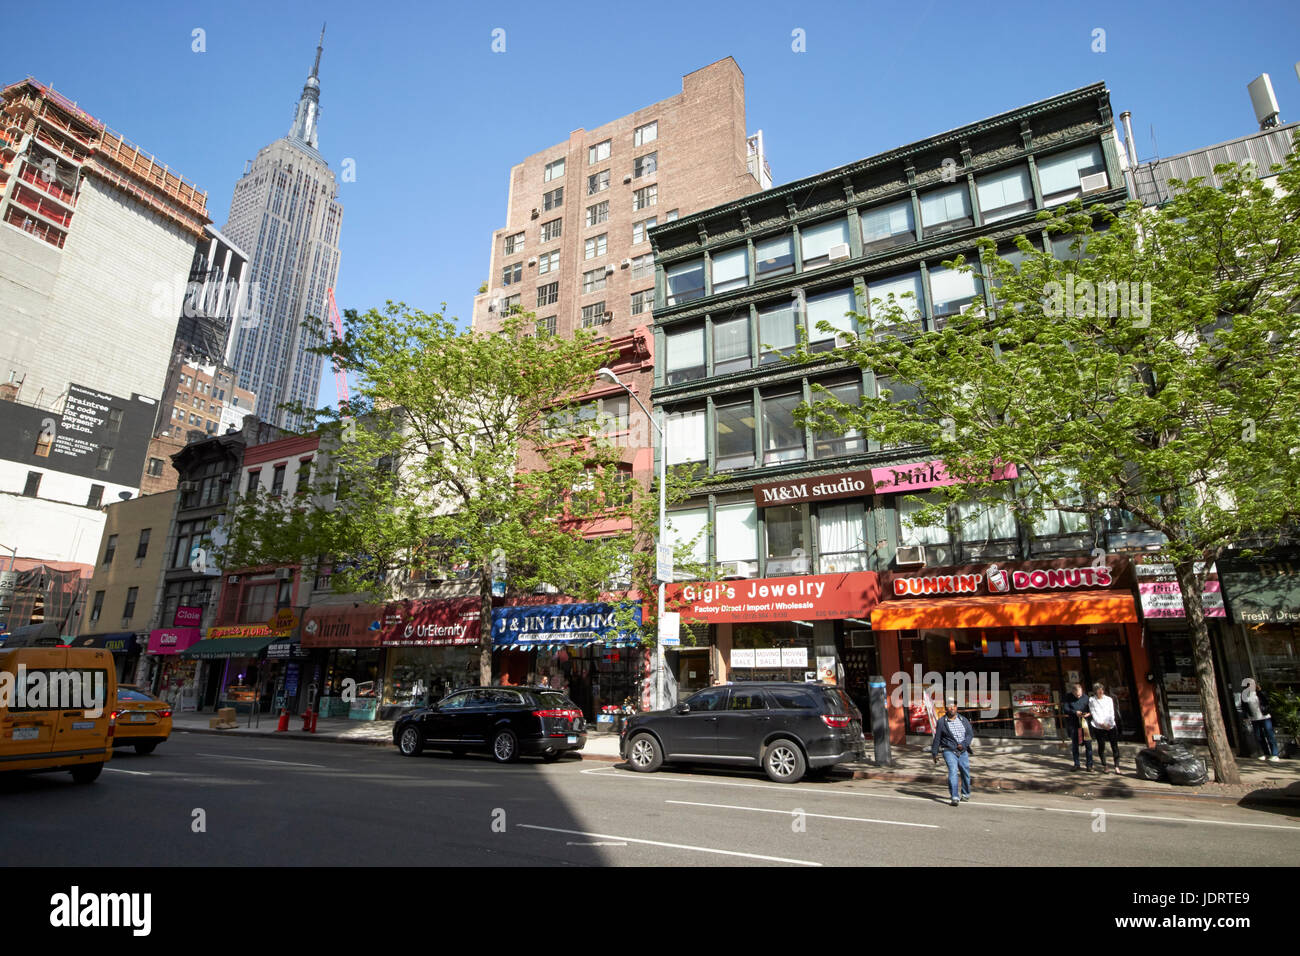 small shops on 6th avenue chelsea with view of the empire state building New York City USA - Stock Image